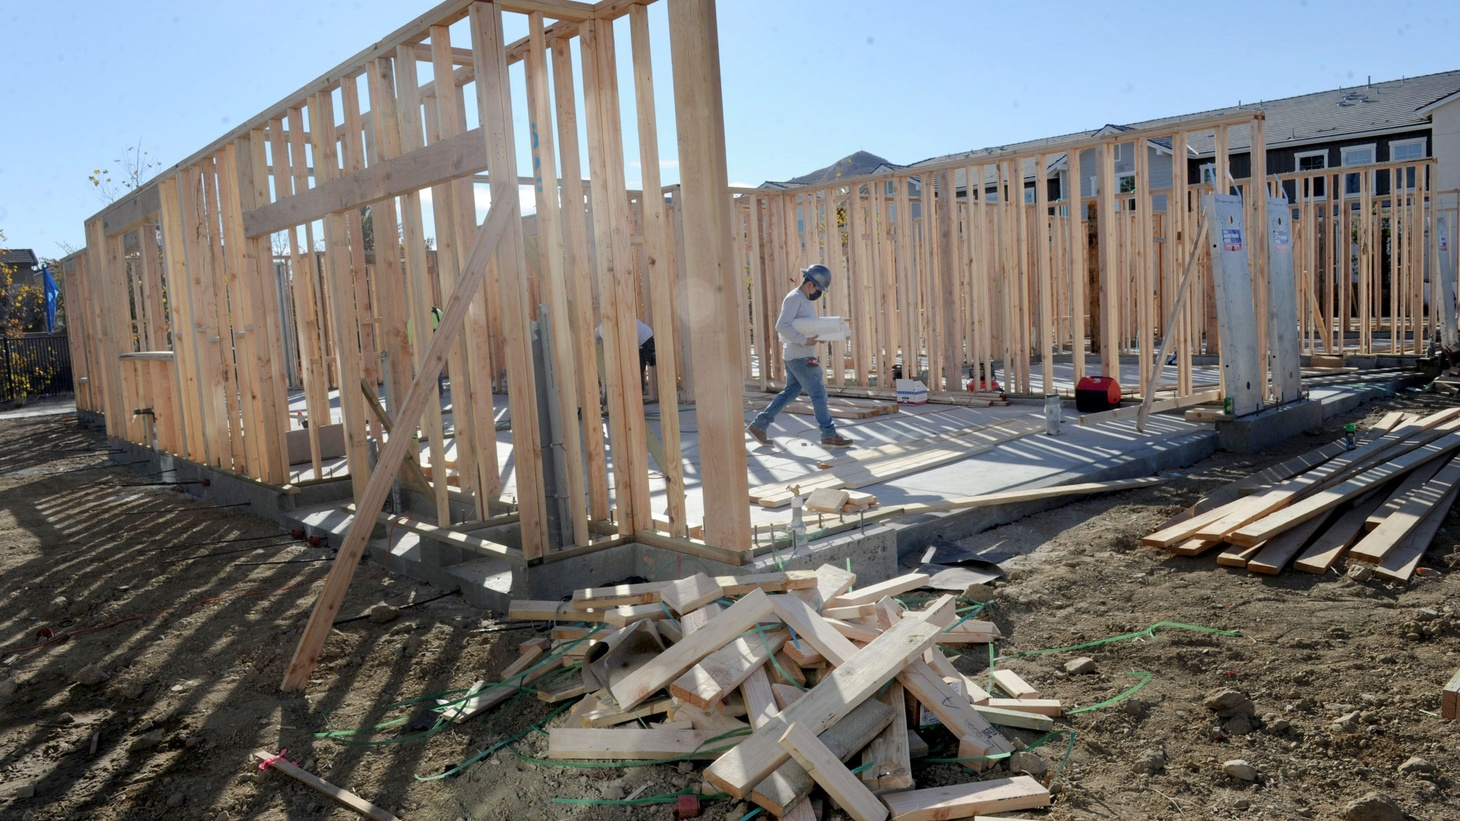 Construction workers frame one of the last units of condos at the Westerly townhomes in Simi Valley on Wednesday, Dec. 2, 2020. The development has seen an uptick in sales during the COVID-19 pandemic.